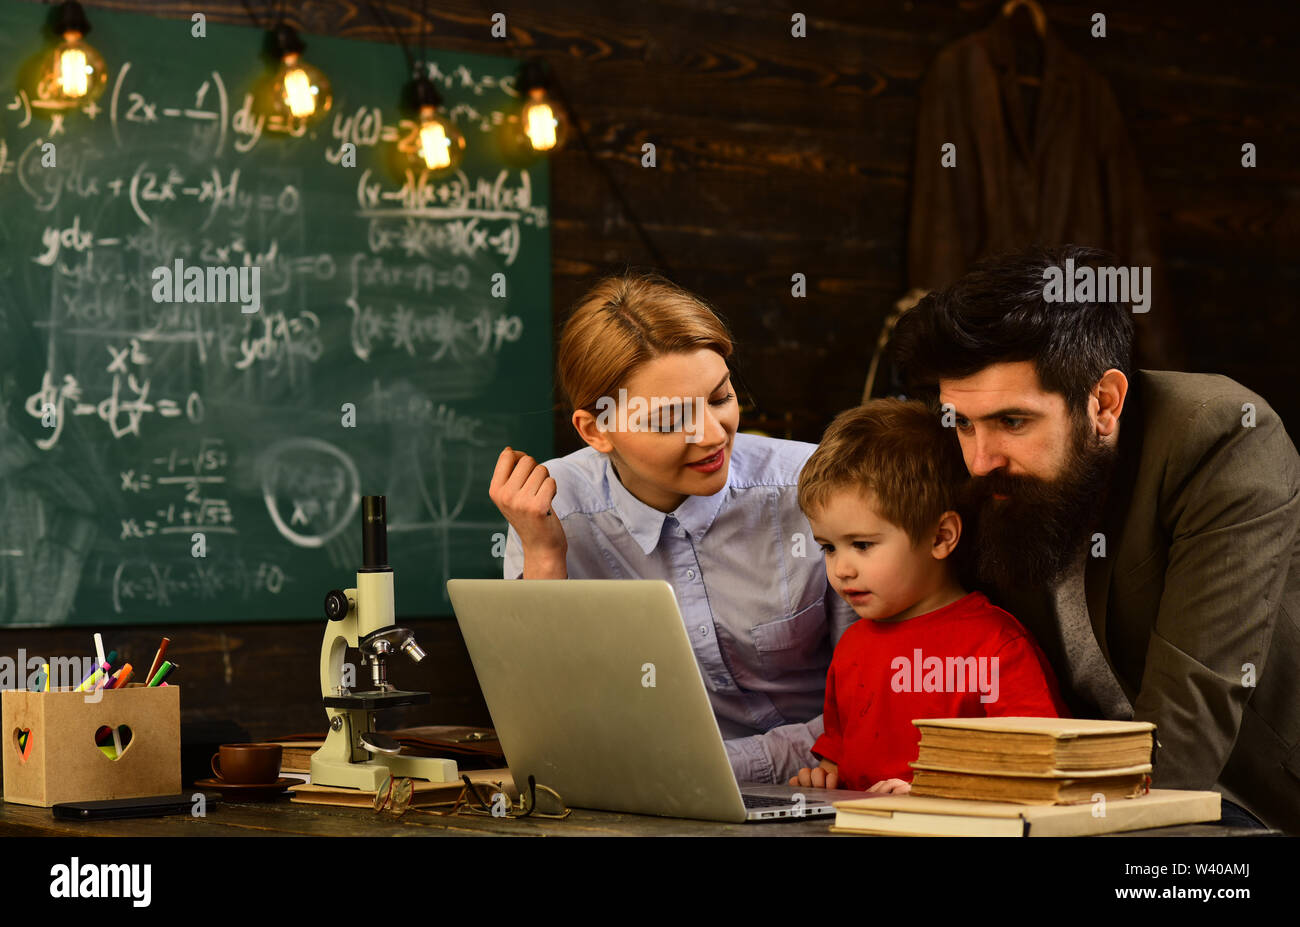 Academic success is much more about hard work than inborn talent, People learning education and school concept, Good tutors are often communication ma - Stock Image